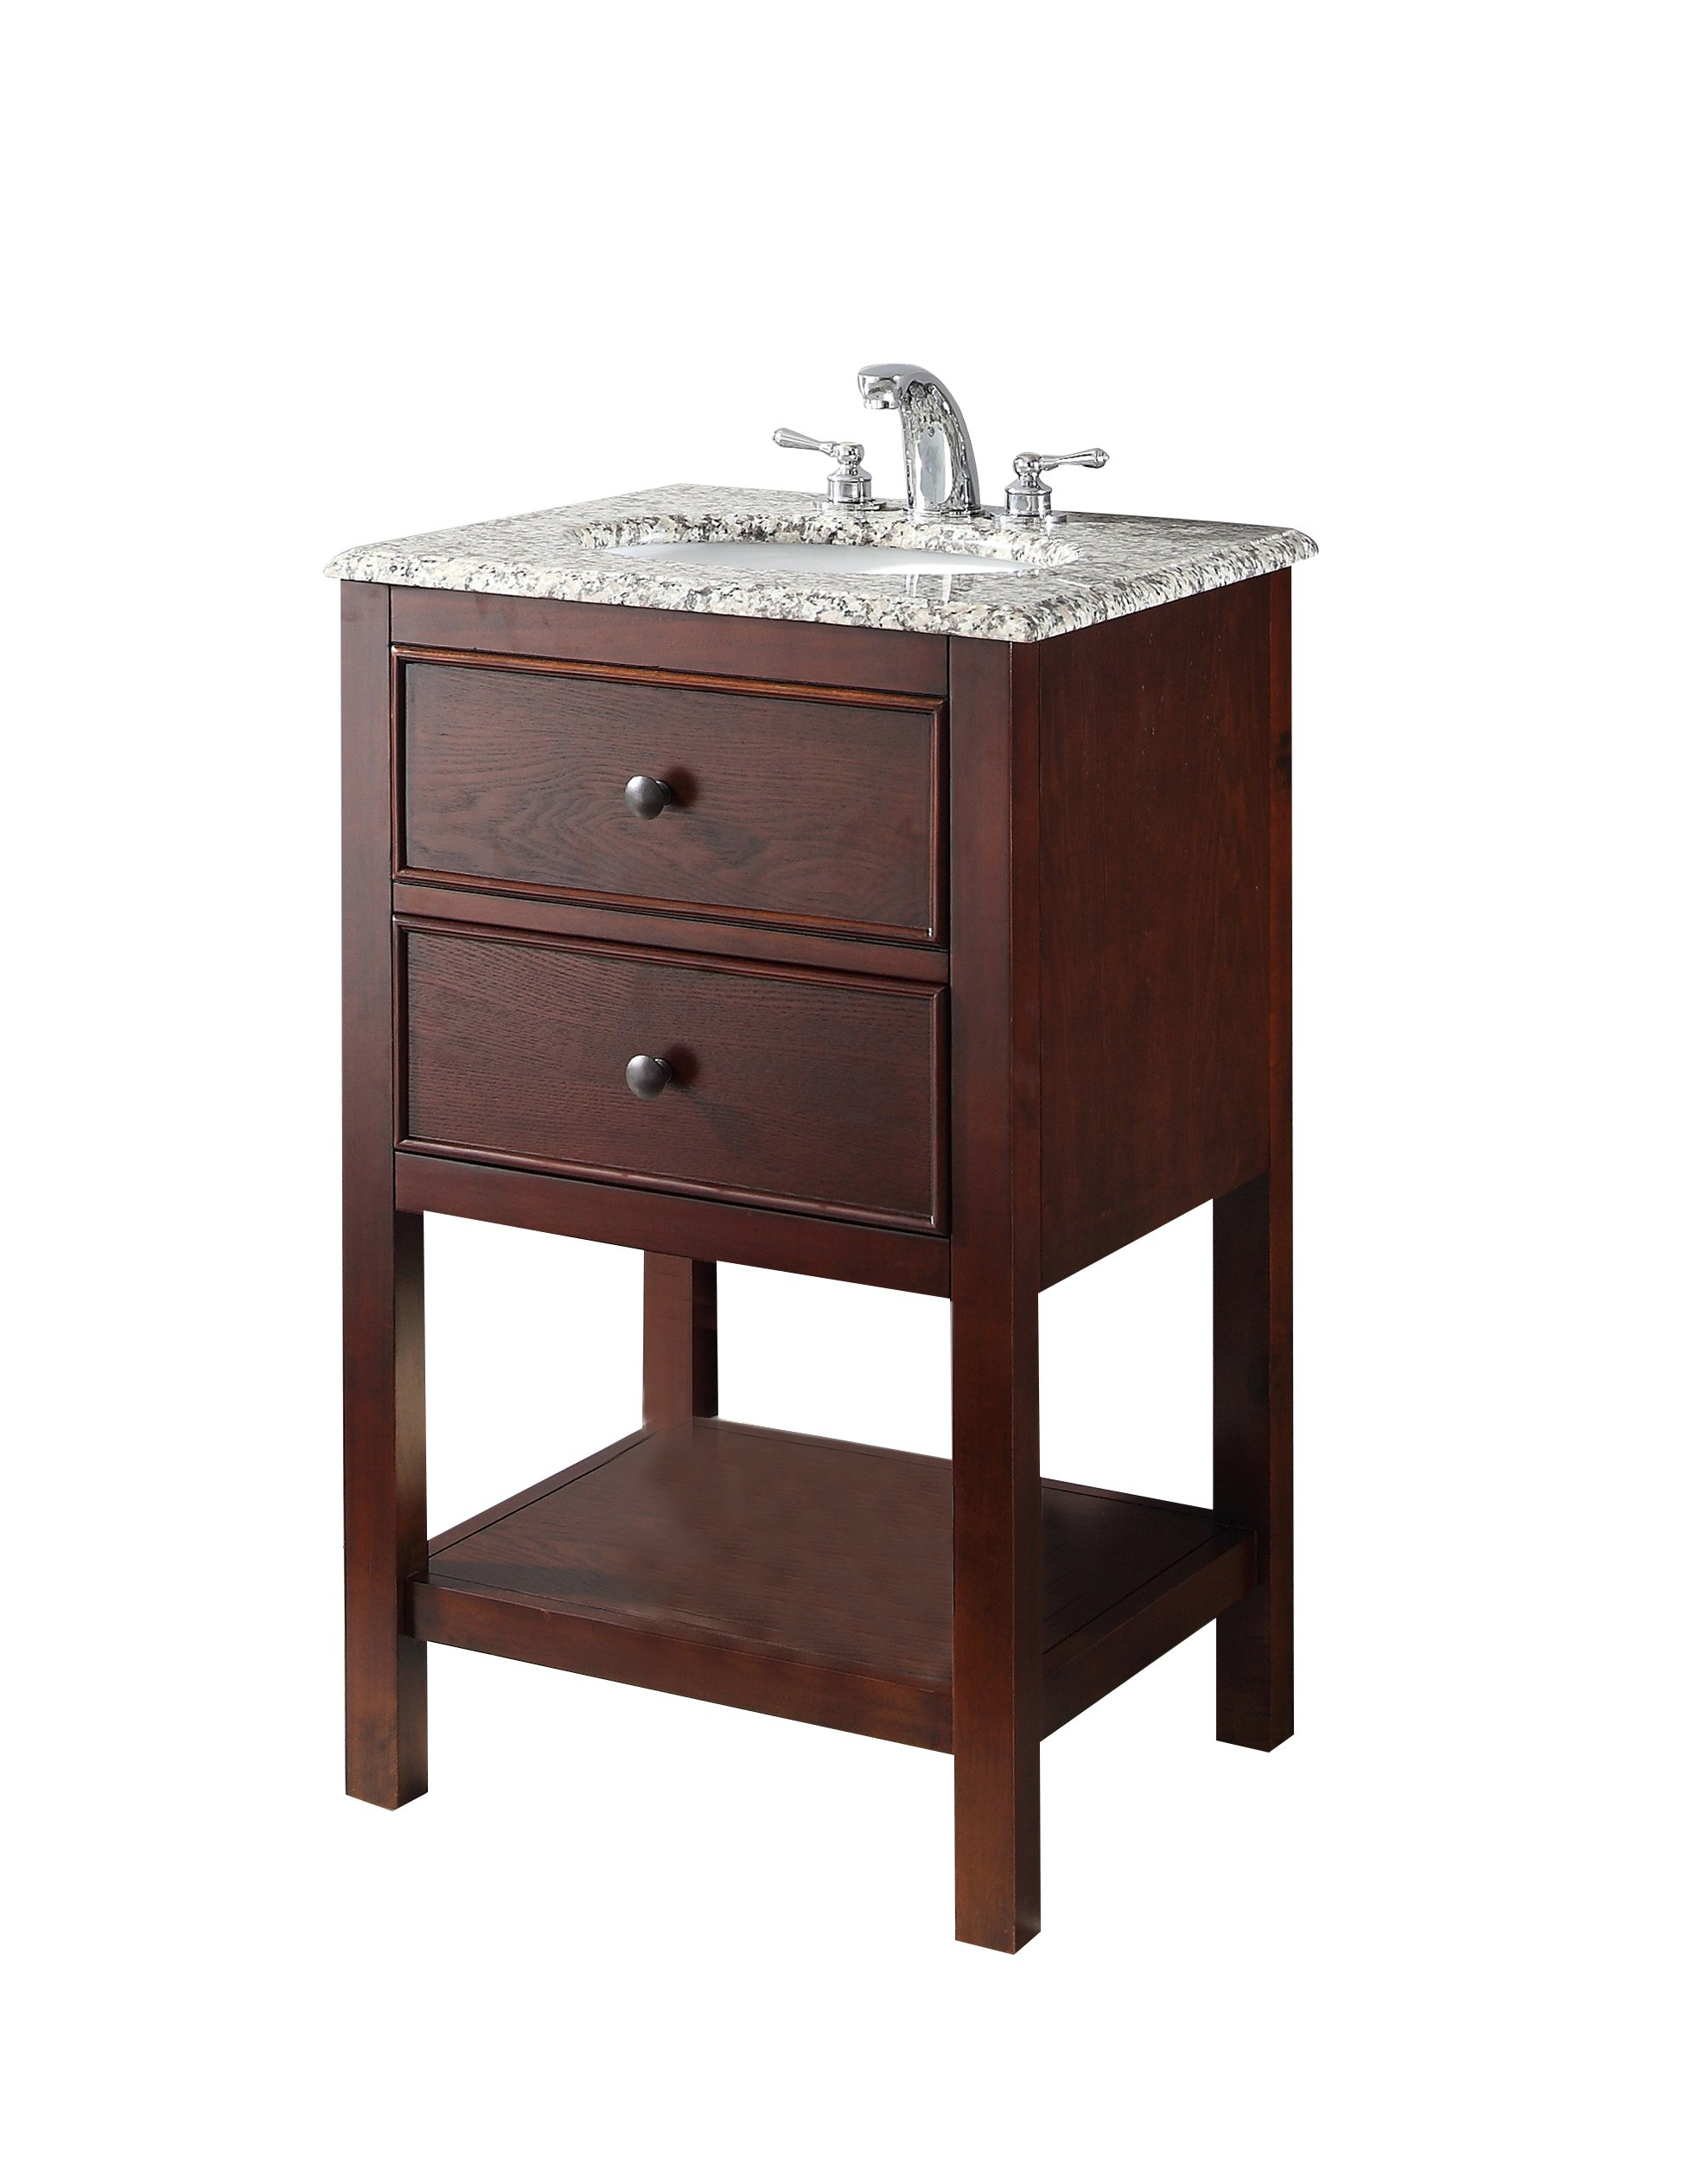 "Simpli Home NL-HHV022H-20-2A Burnaby 20 inch Contemporary Bath Vanity in Walnut Brown  with Dappled Grey Granite Top - Single sink bathroom vanity with one functional drawer and one open bottom shelf, hardwood frame and legs Vanity color: Walnut Brown with antique nickel round knobs Overall Vanity Size with Top: 21"" w x 19"" d x 34.5"" h; Top weight: 27 lbs., Top edge thickness: 11/16"" - bathroom-vanities, bathroom-fixtures-hardware, bathroom - 81cFvkWeGHL -"